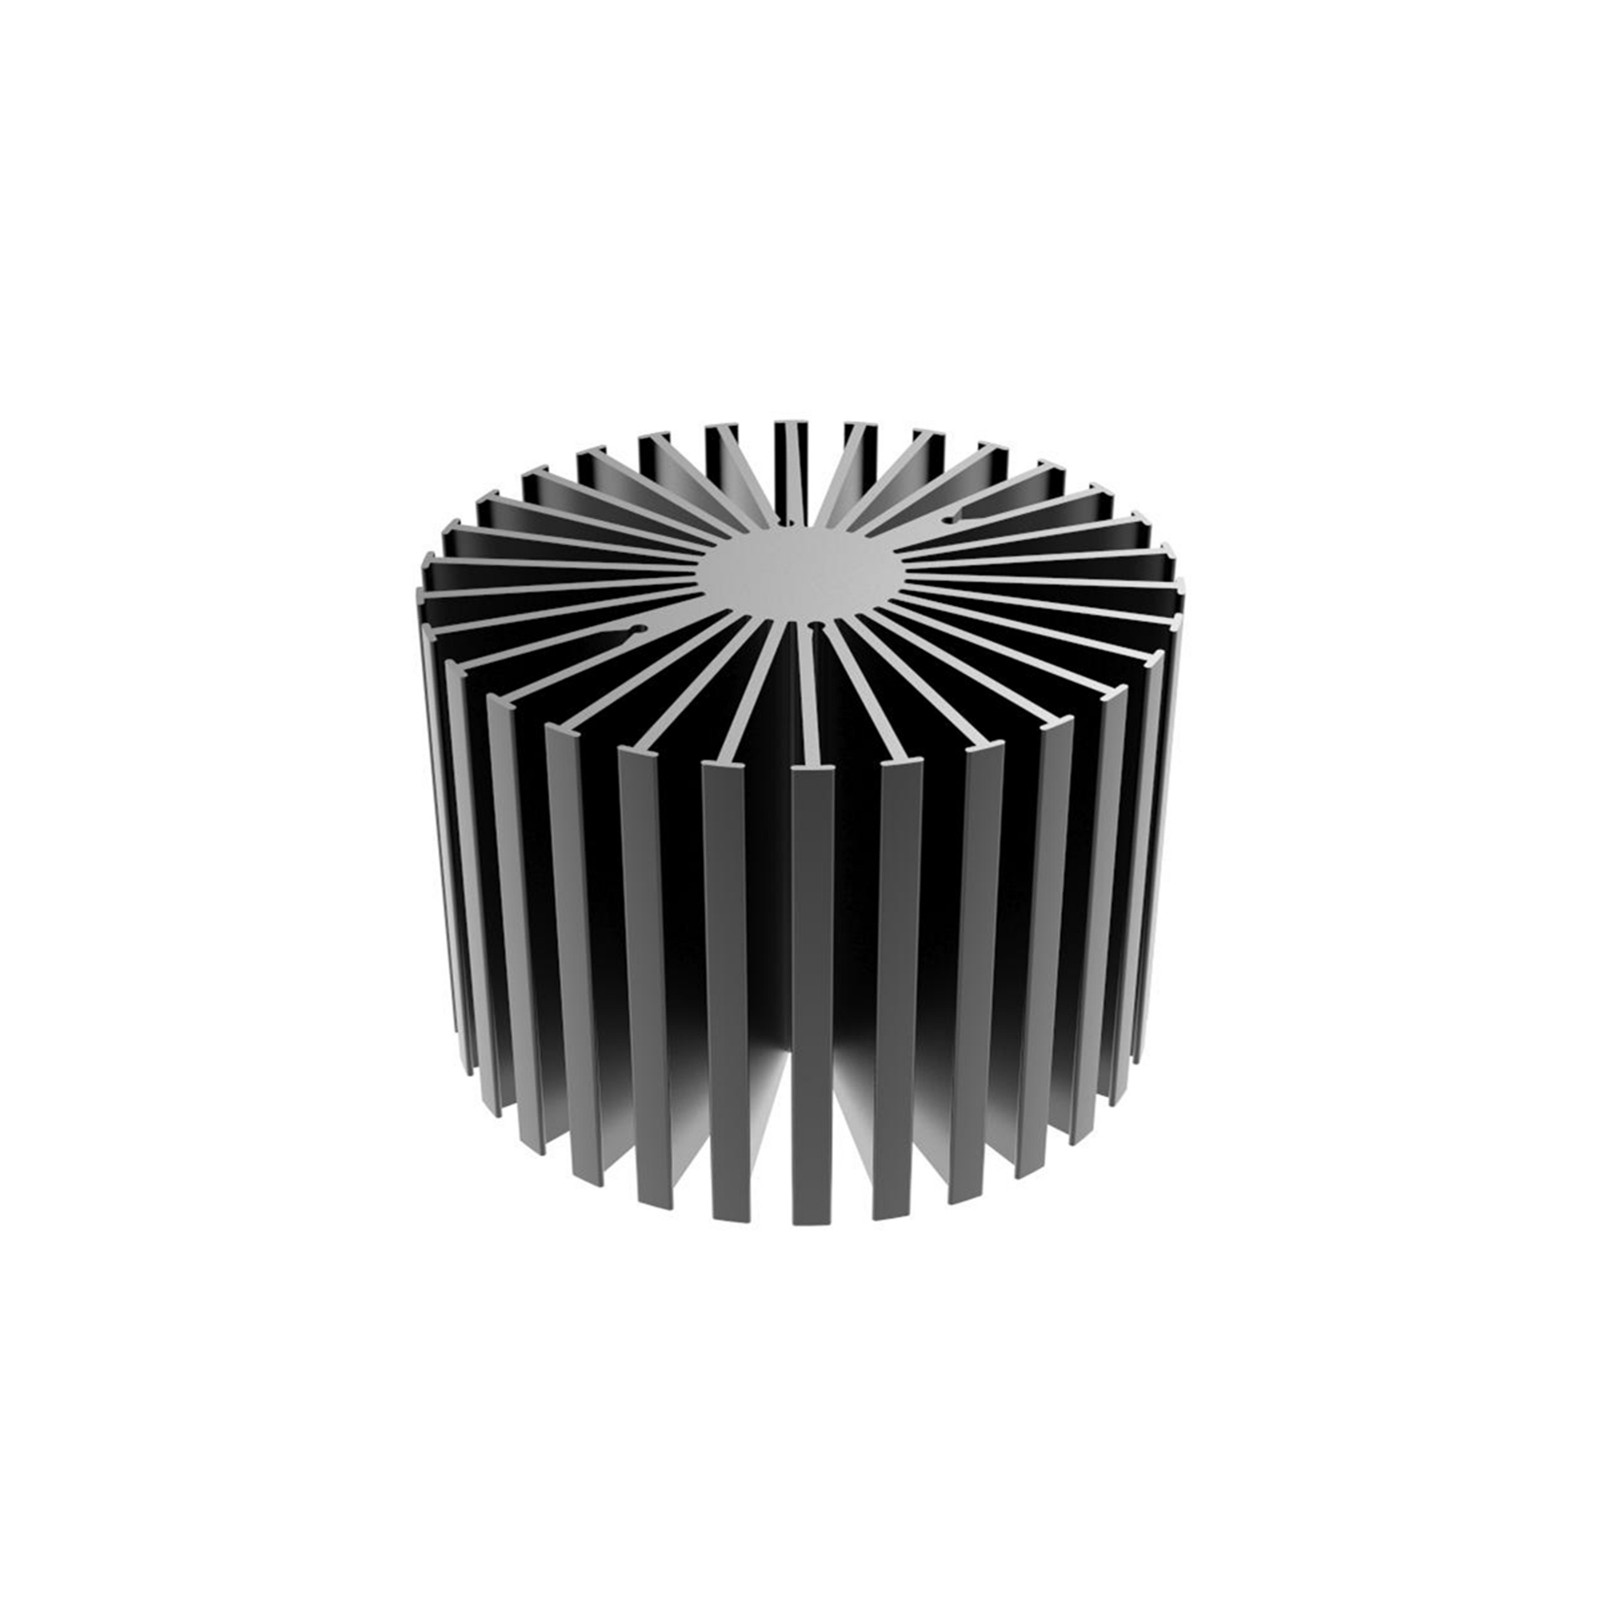 dusting large heat sink extruded supplier for office-4